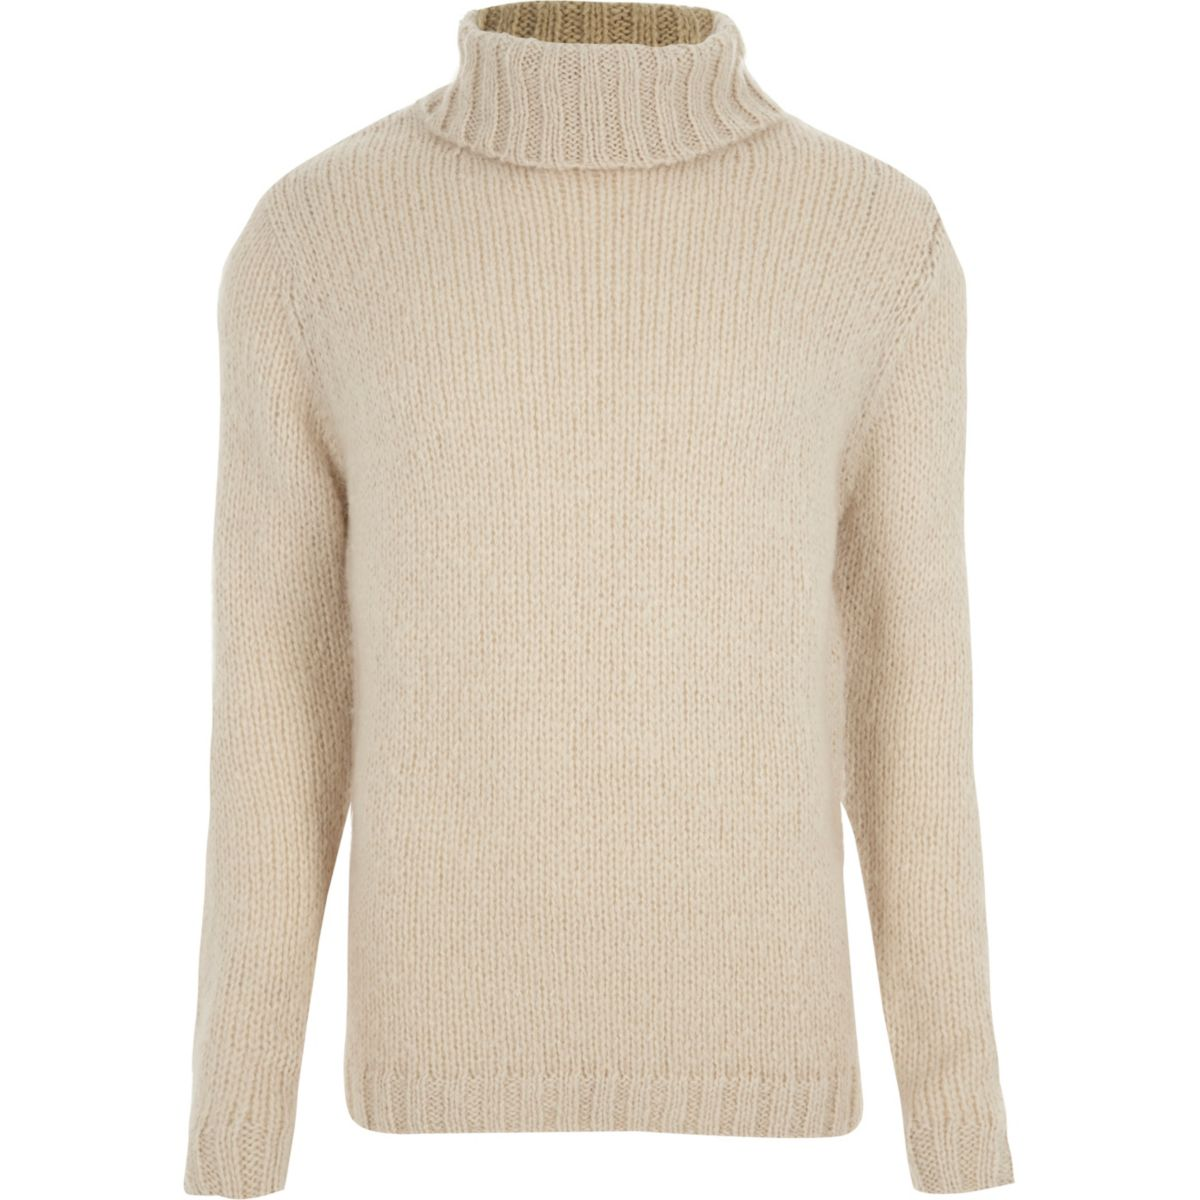 Stone long sleeve roll neck sweater